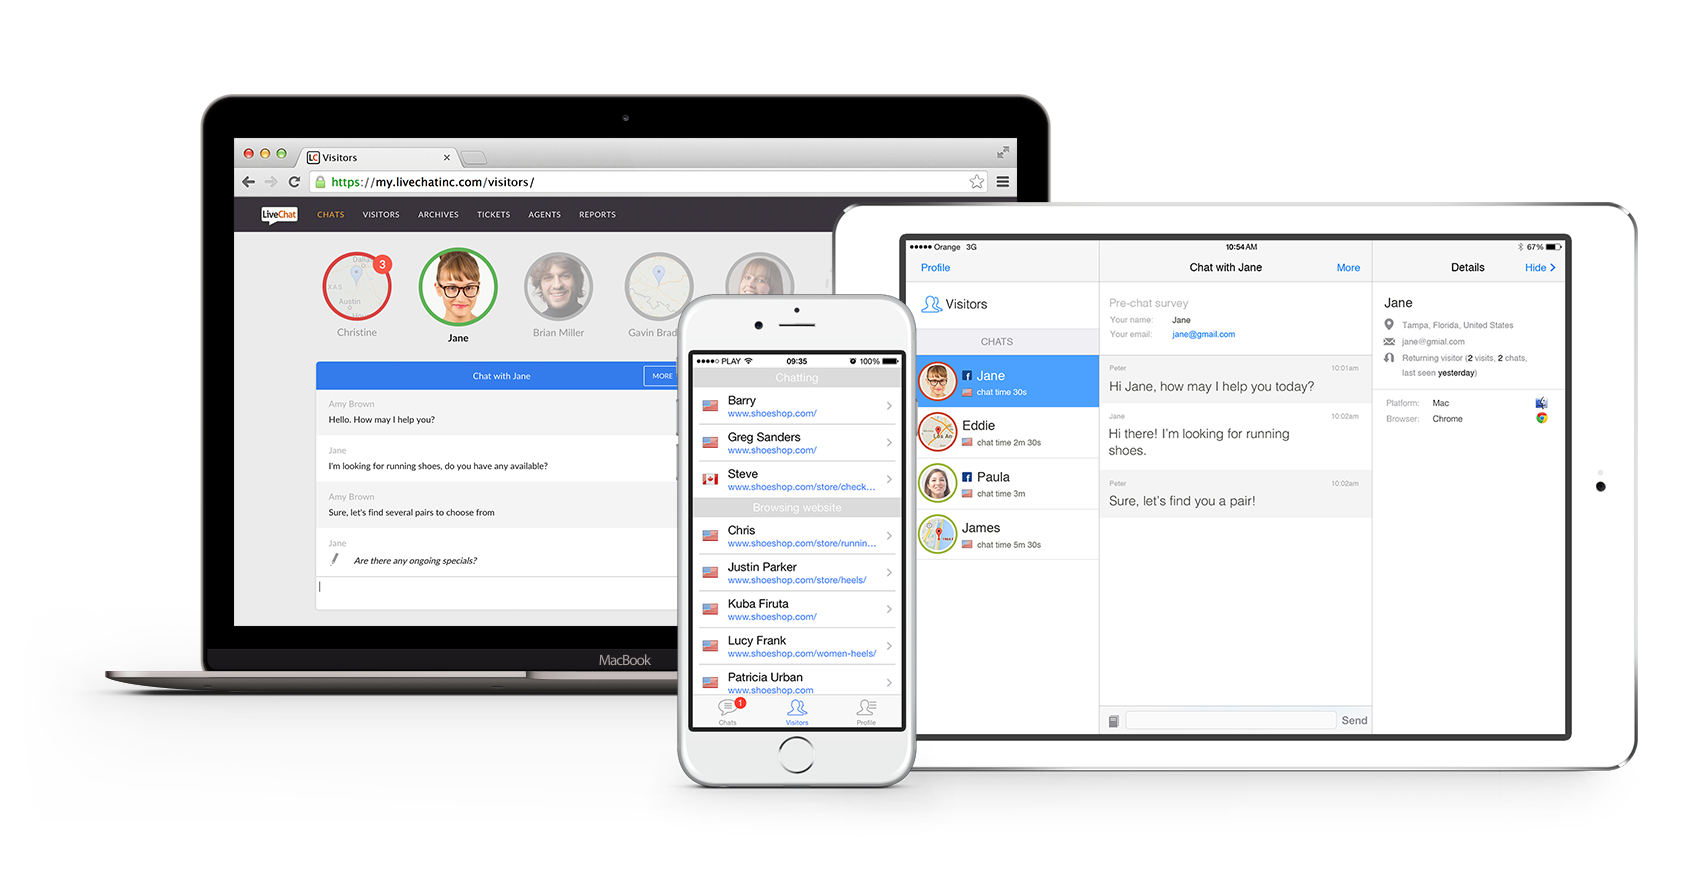 LiveChat can be used through web browser or dedicated desktop and mobile apps